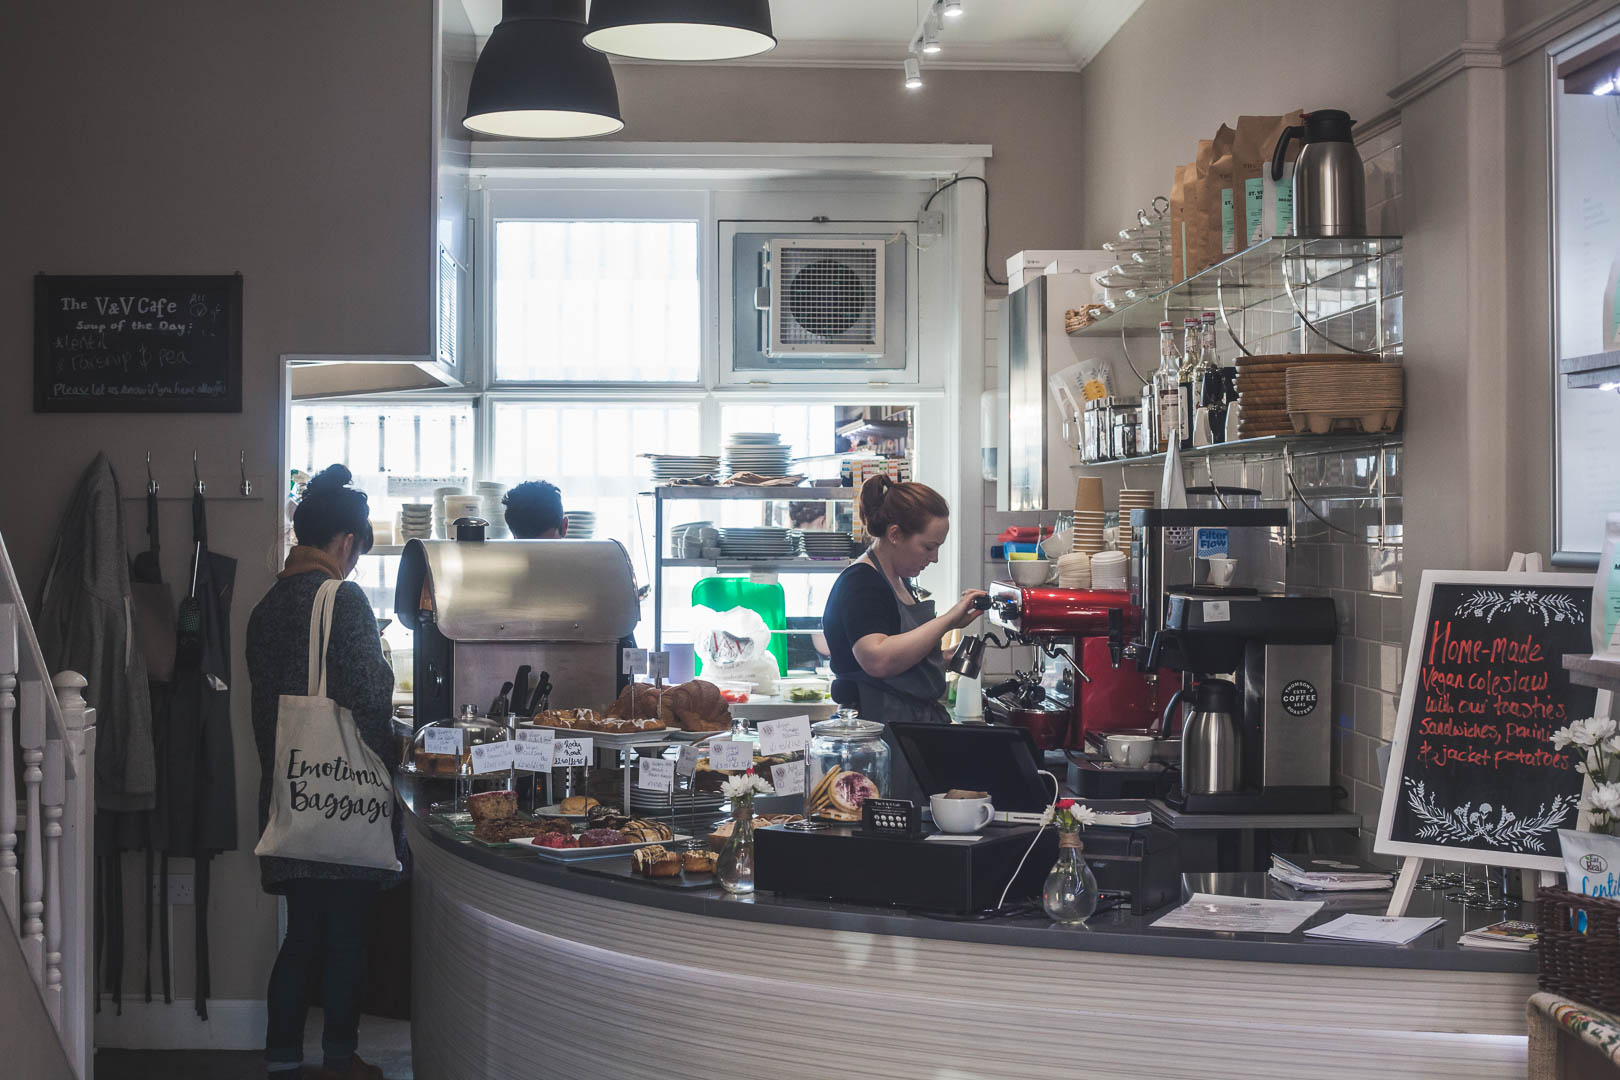 The V&V Cafe is a fully vegan cafe in the West End of Glasgow. With a range of breakfast and lunch items, a great selection vegan cakes and a varied takeaway and retail offer, the V&V Cafe Glasgow has quickly become a favourite among locals and students of the area alike!